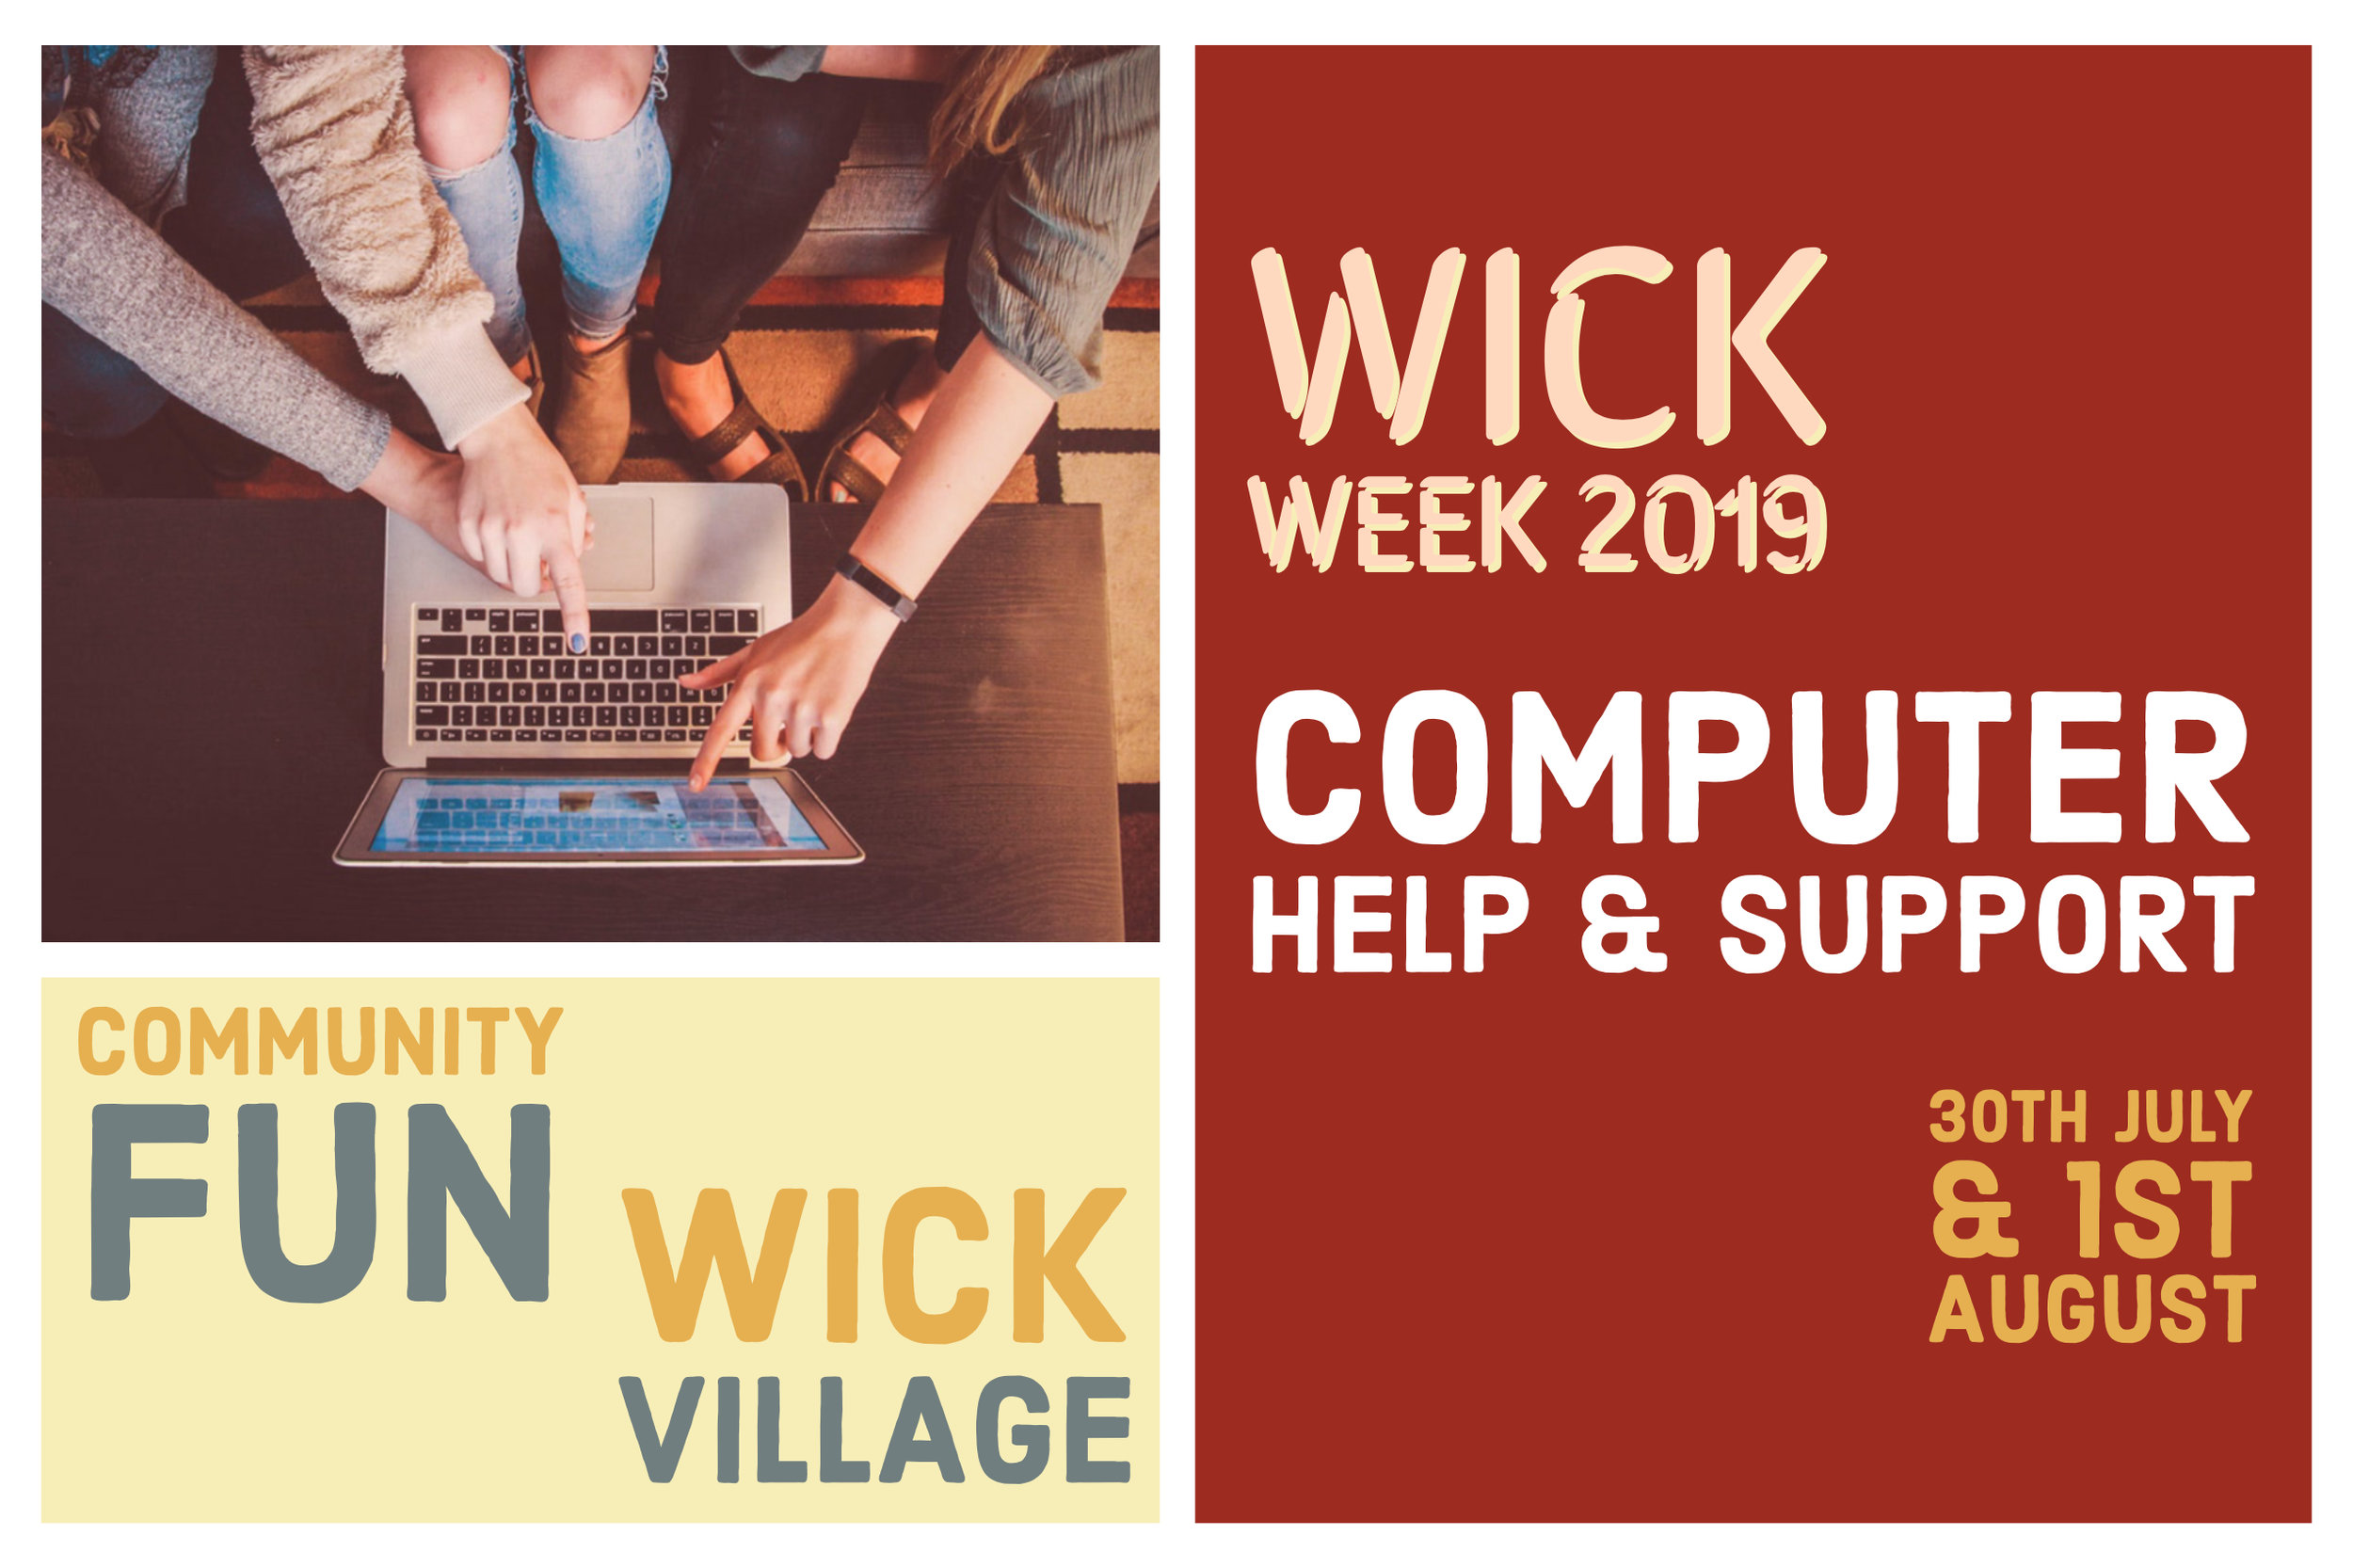 Wick Week 2019 - Computer Help And Support.